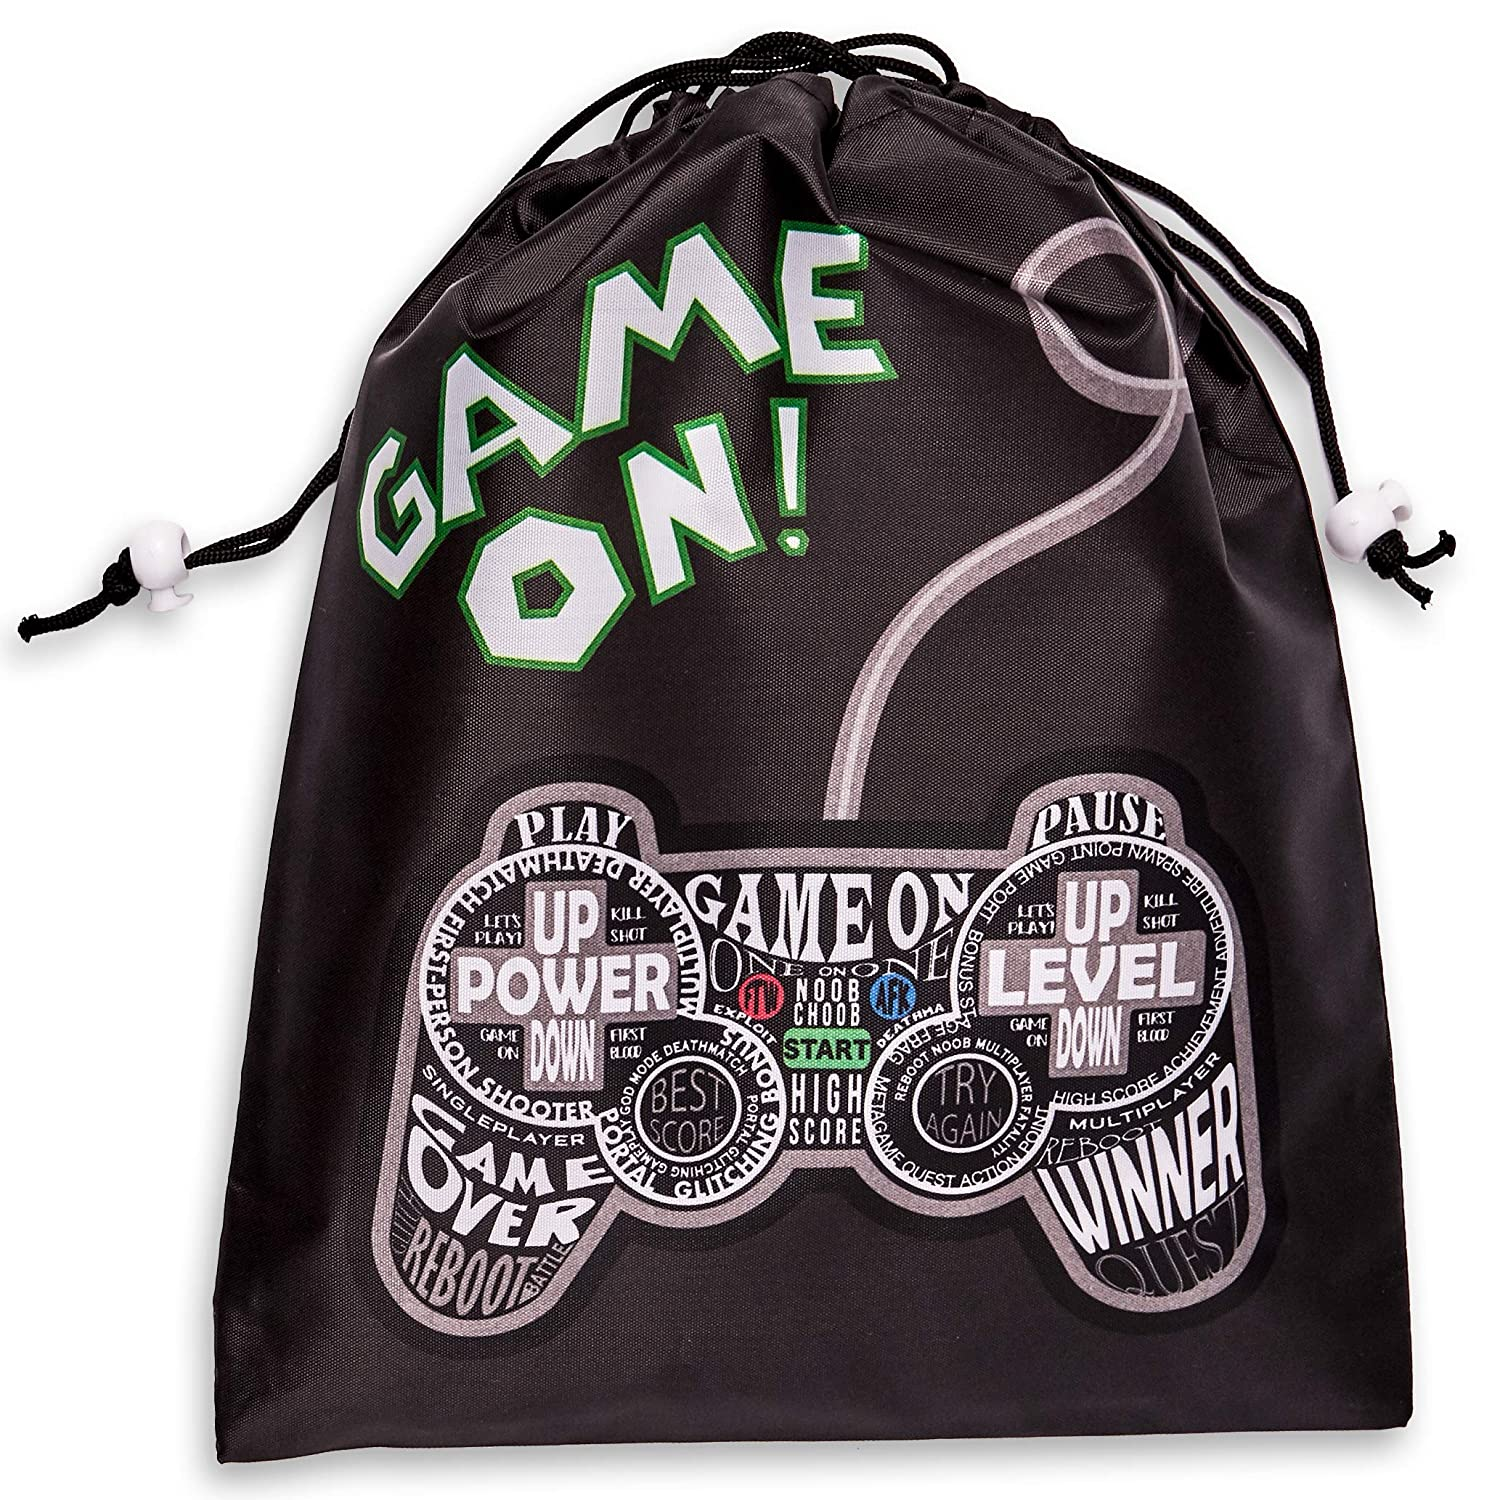 Juvale 12-Pack Drawstring Party Favor Bags, Video Gamer Supplies, Game On Design, 9.5 x 12 inches